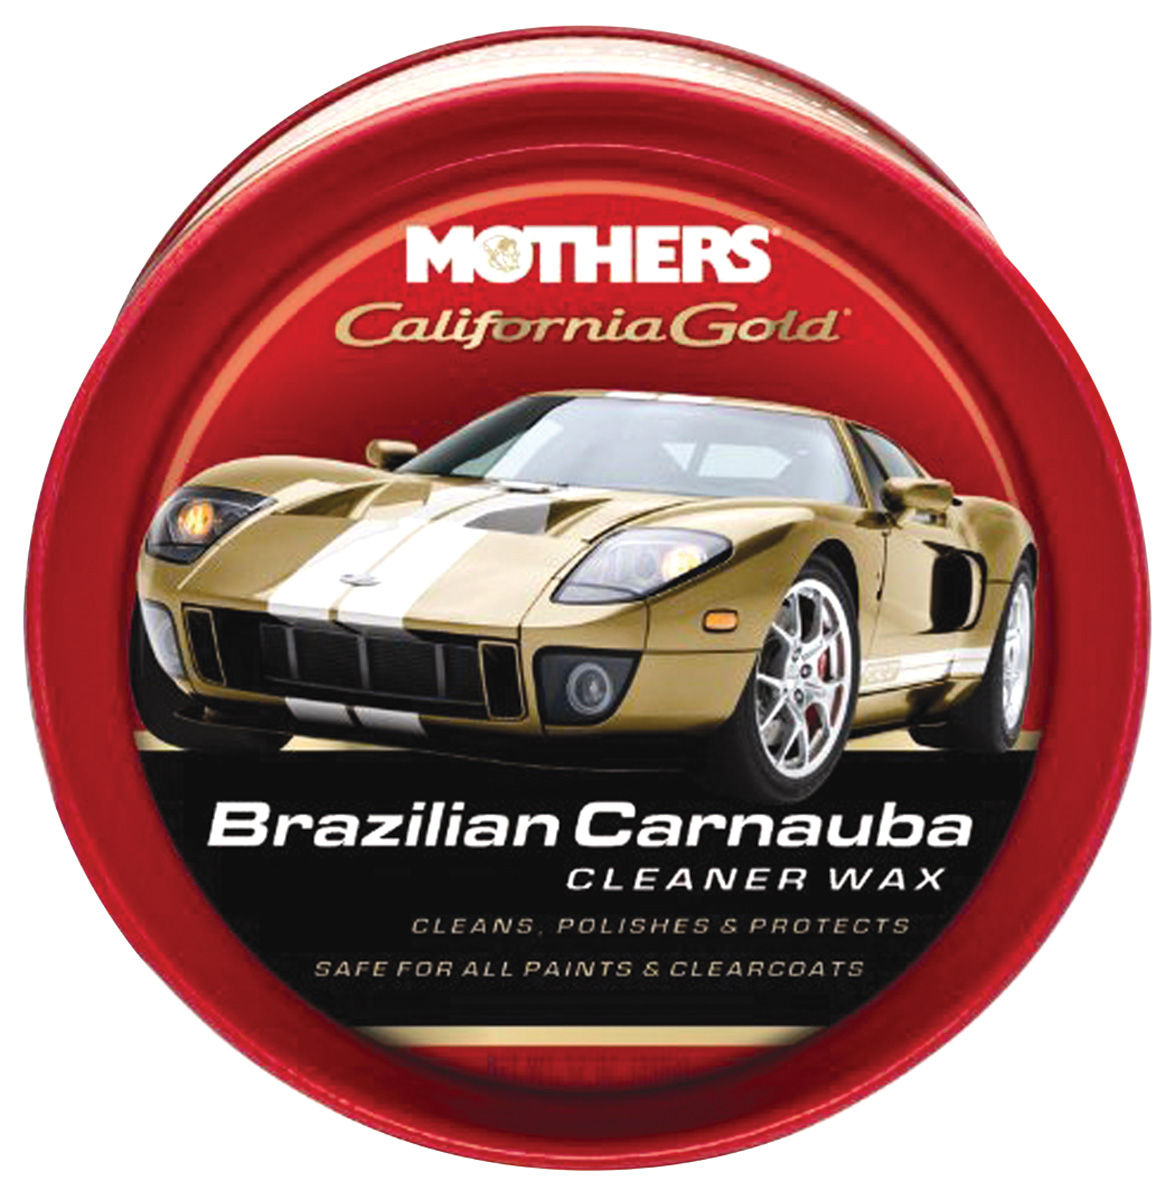 Photo of California Gold Brazilian Carnauba Cleaner Wax paste, 12-oz.